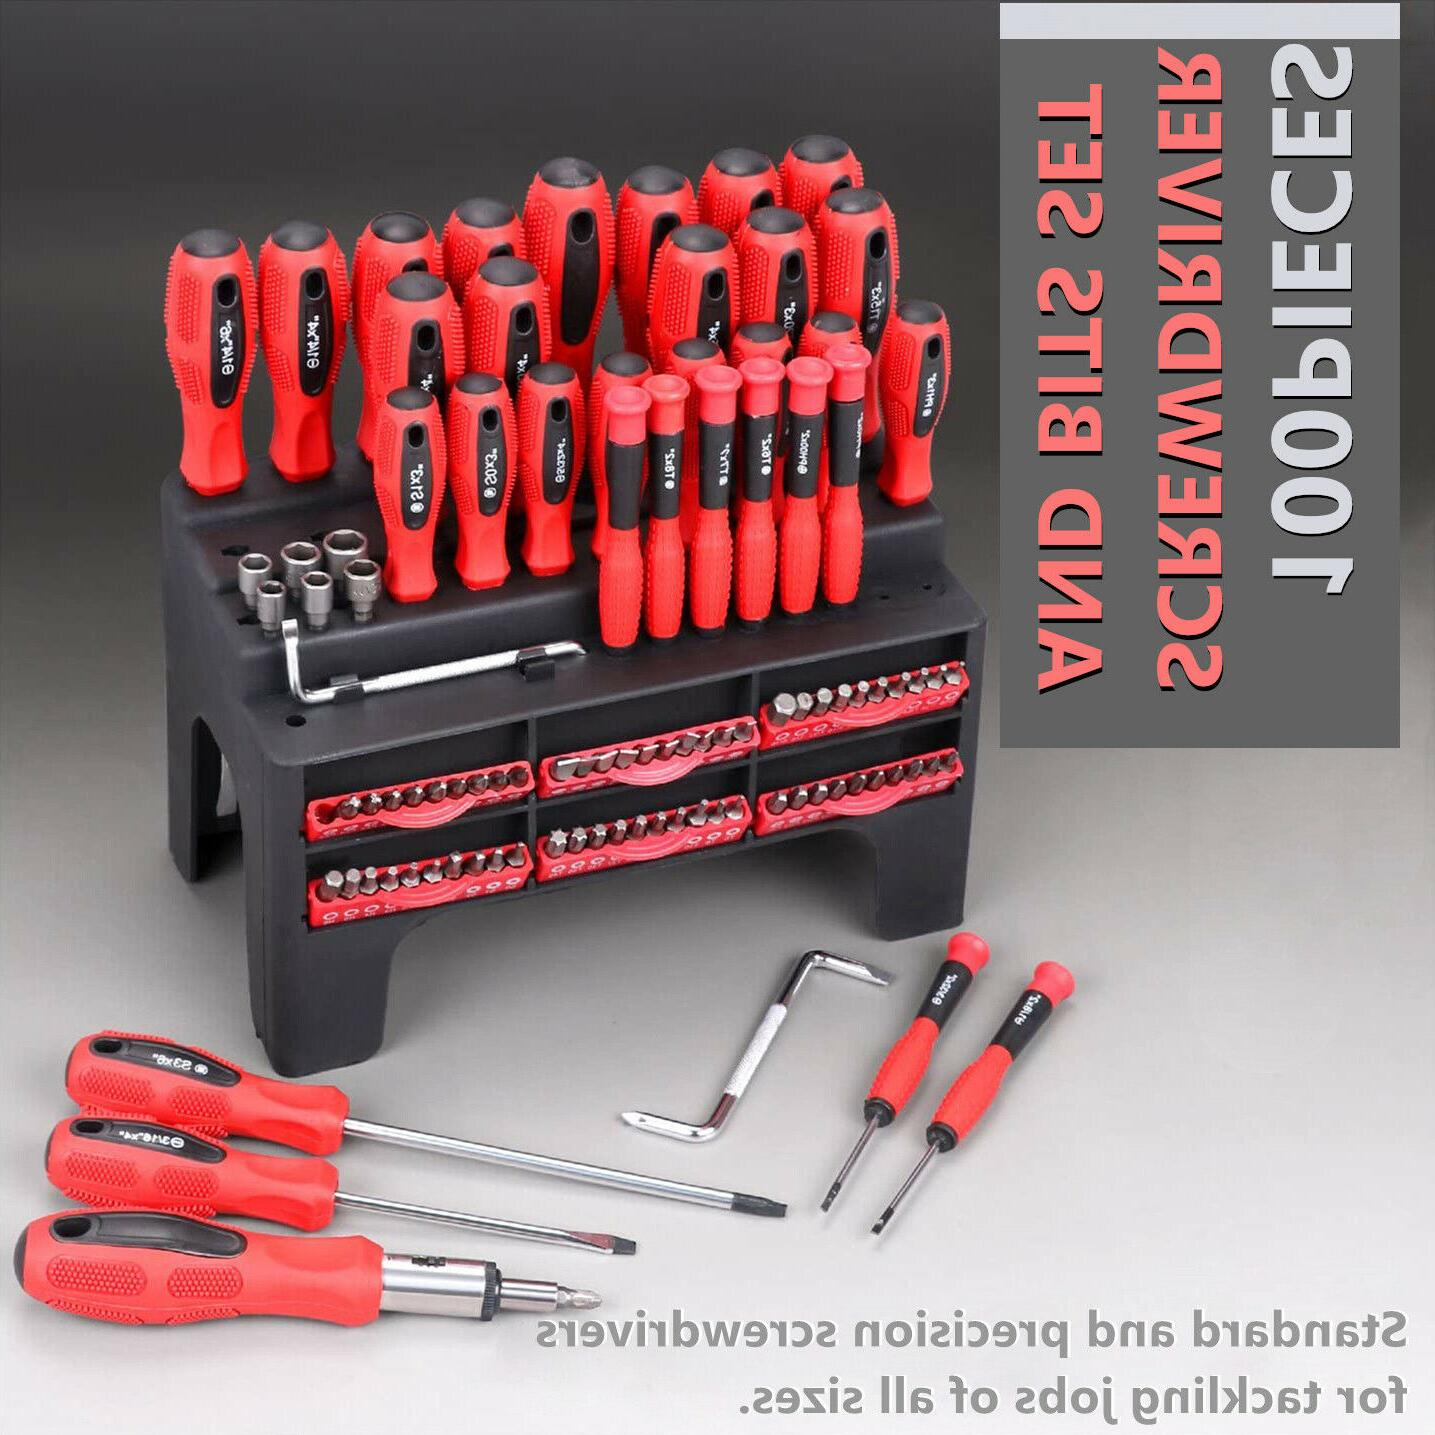 100-Piece Magnetic with Plastic Best Tools for Men